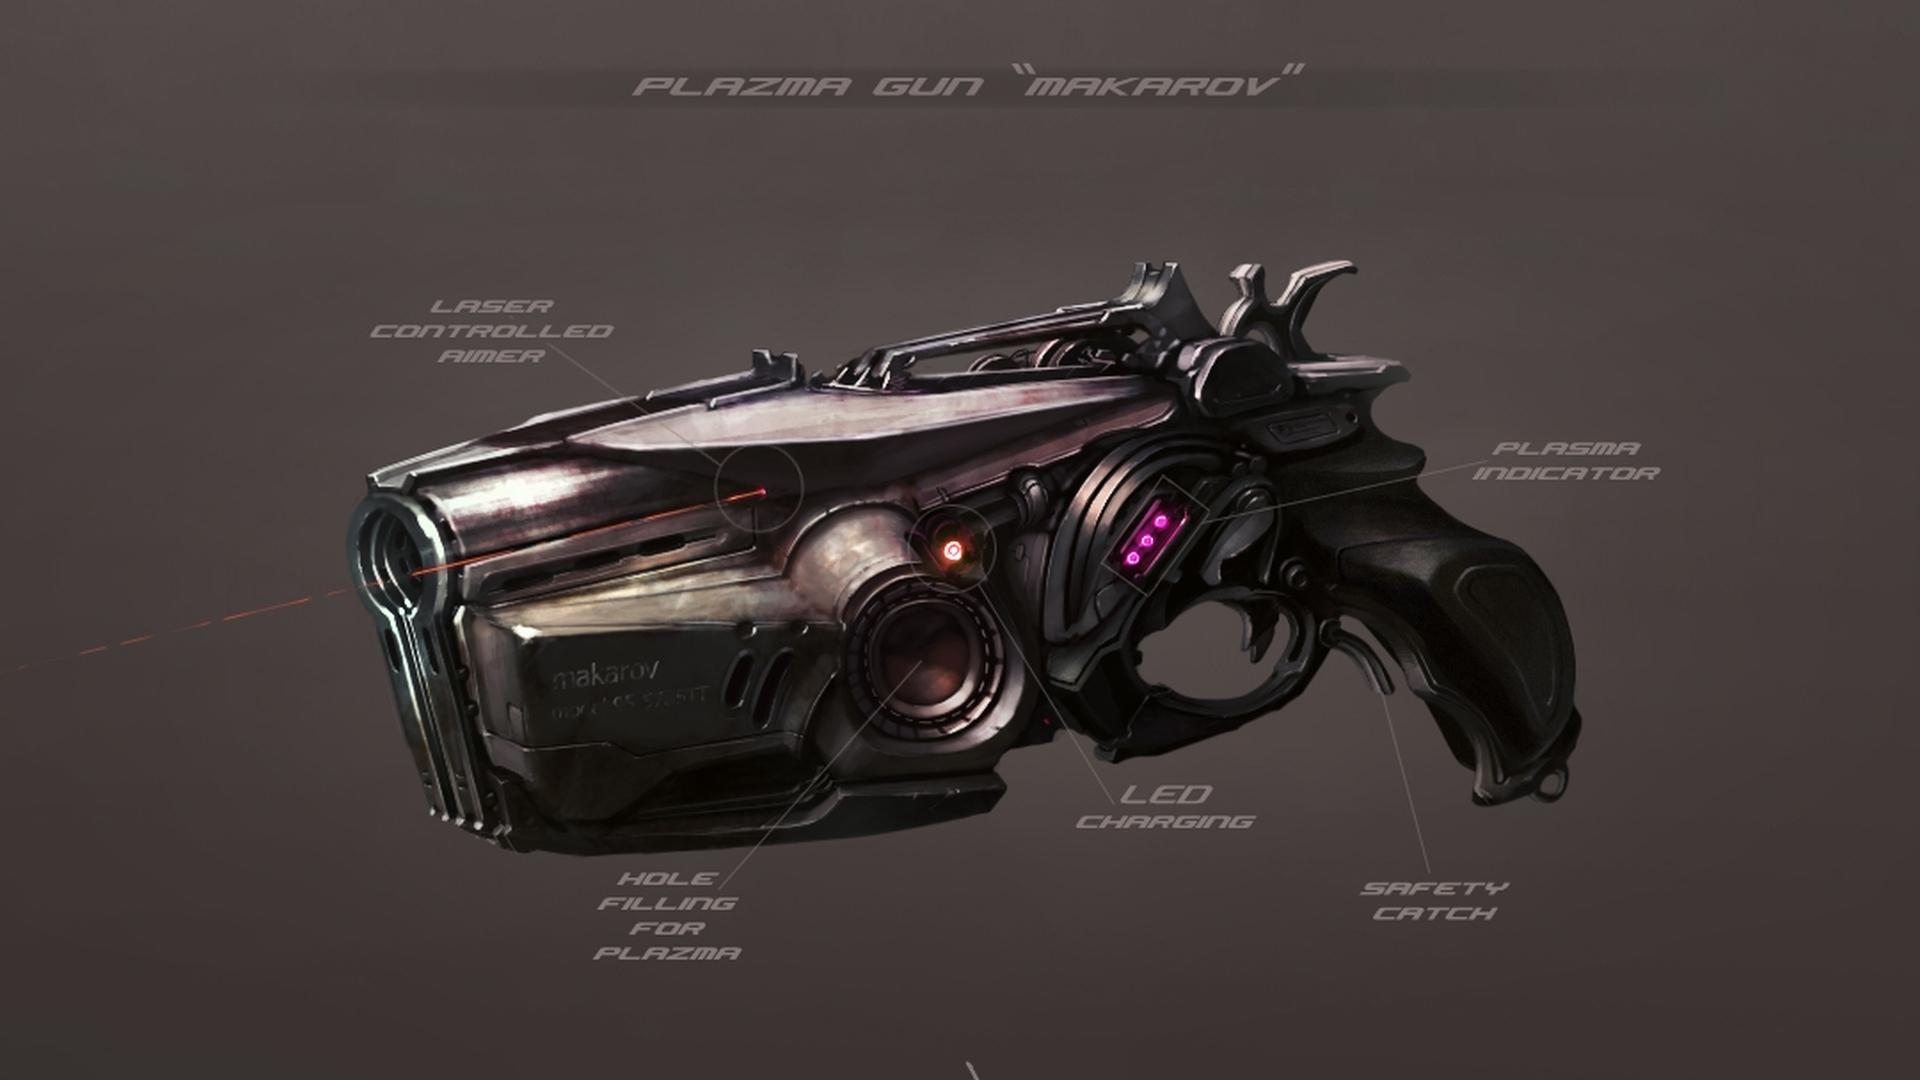 Weapon Sci Fi wallpapers HD quality